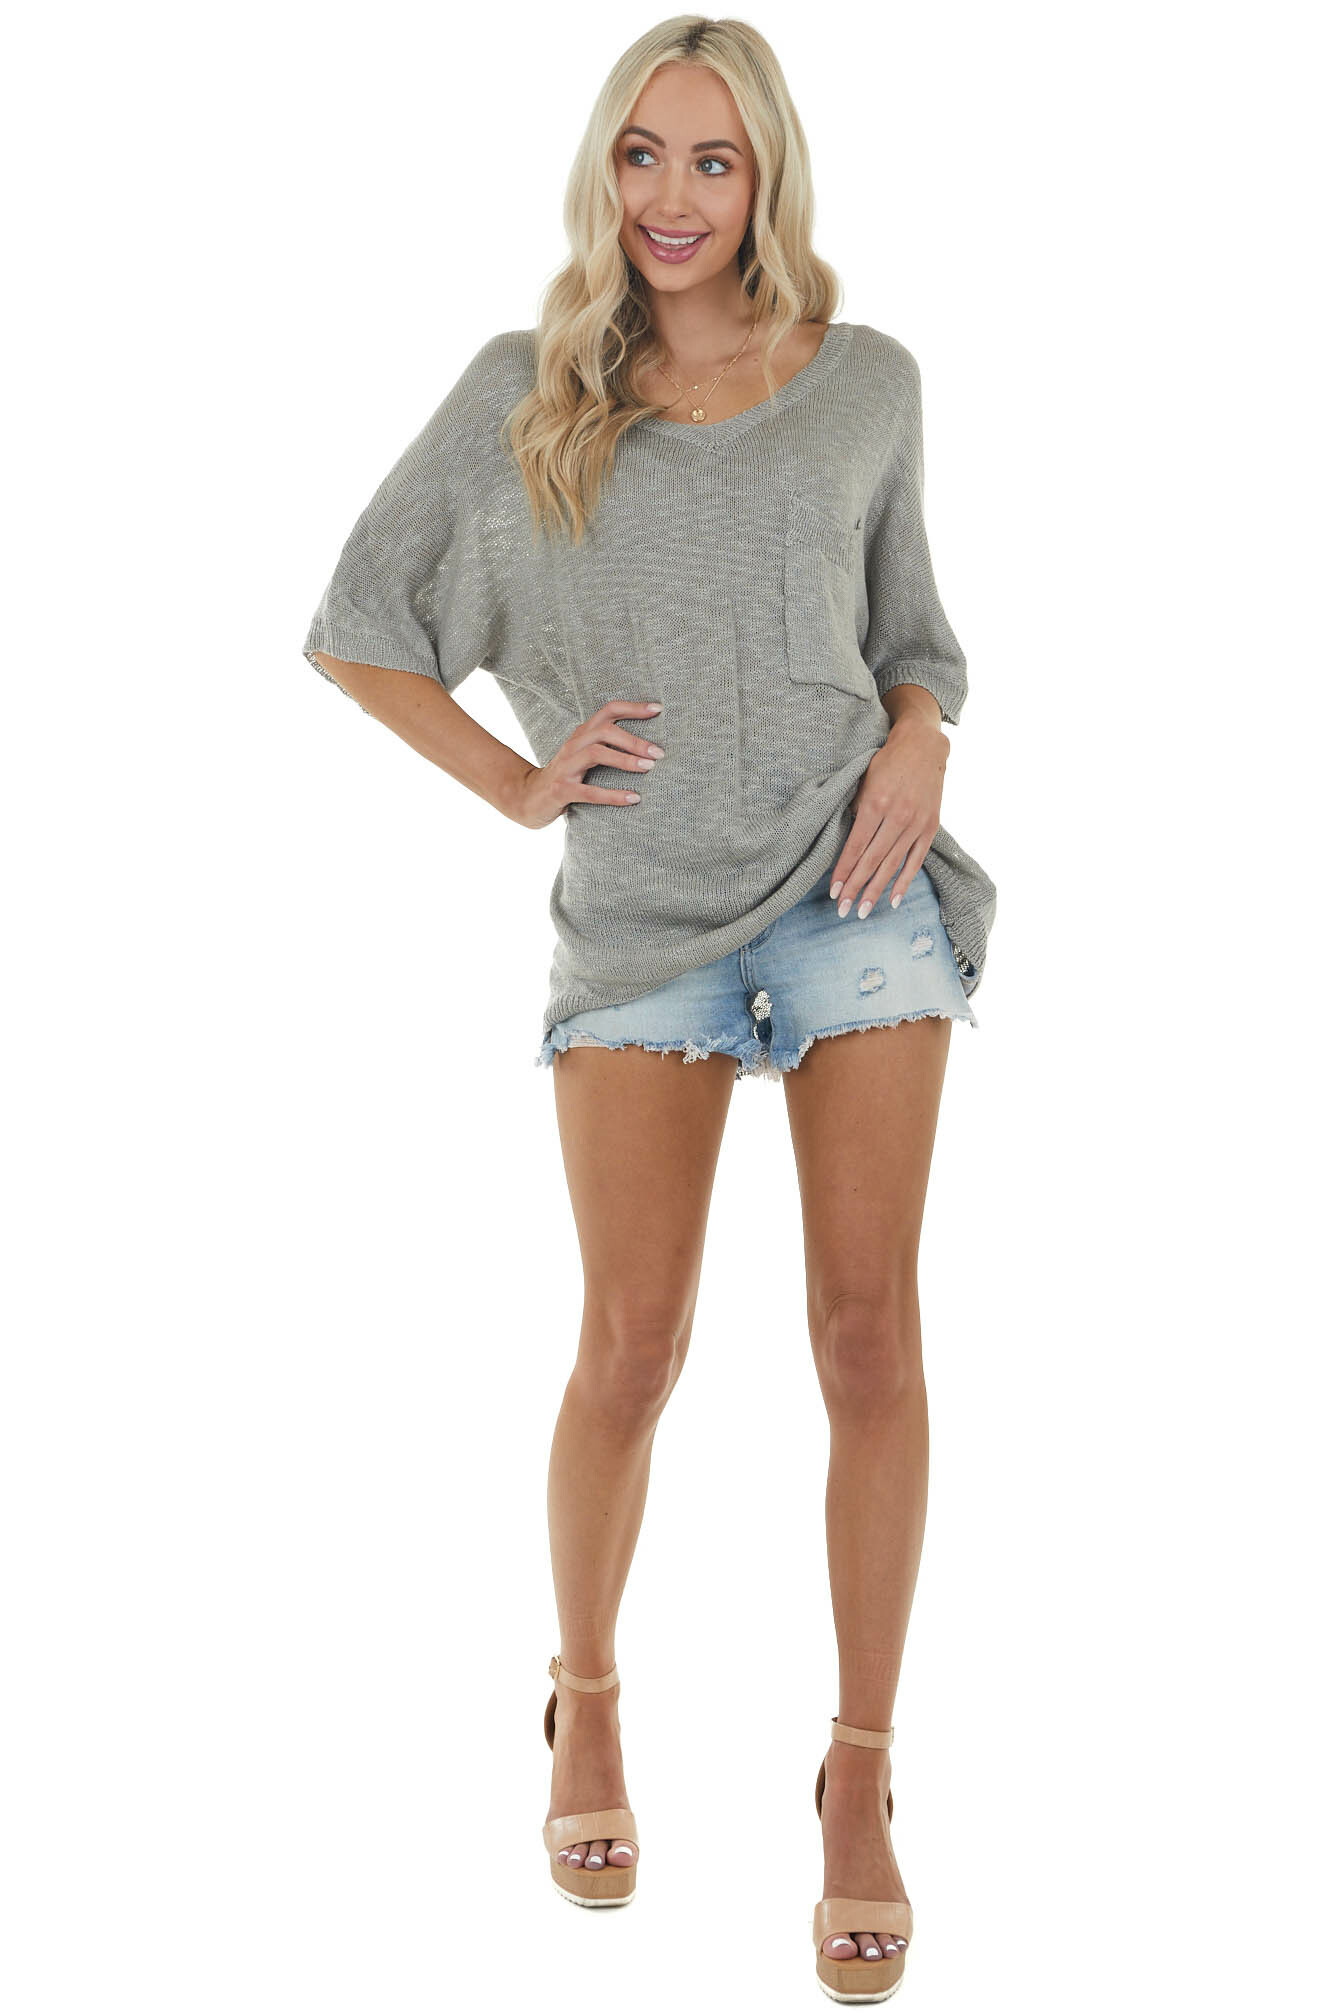 Ash Grey Lightweight Stretchy Knit Top with Pocket Detail